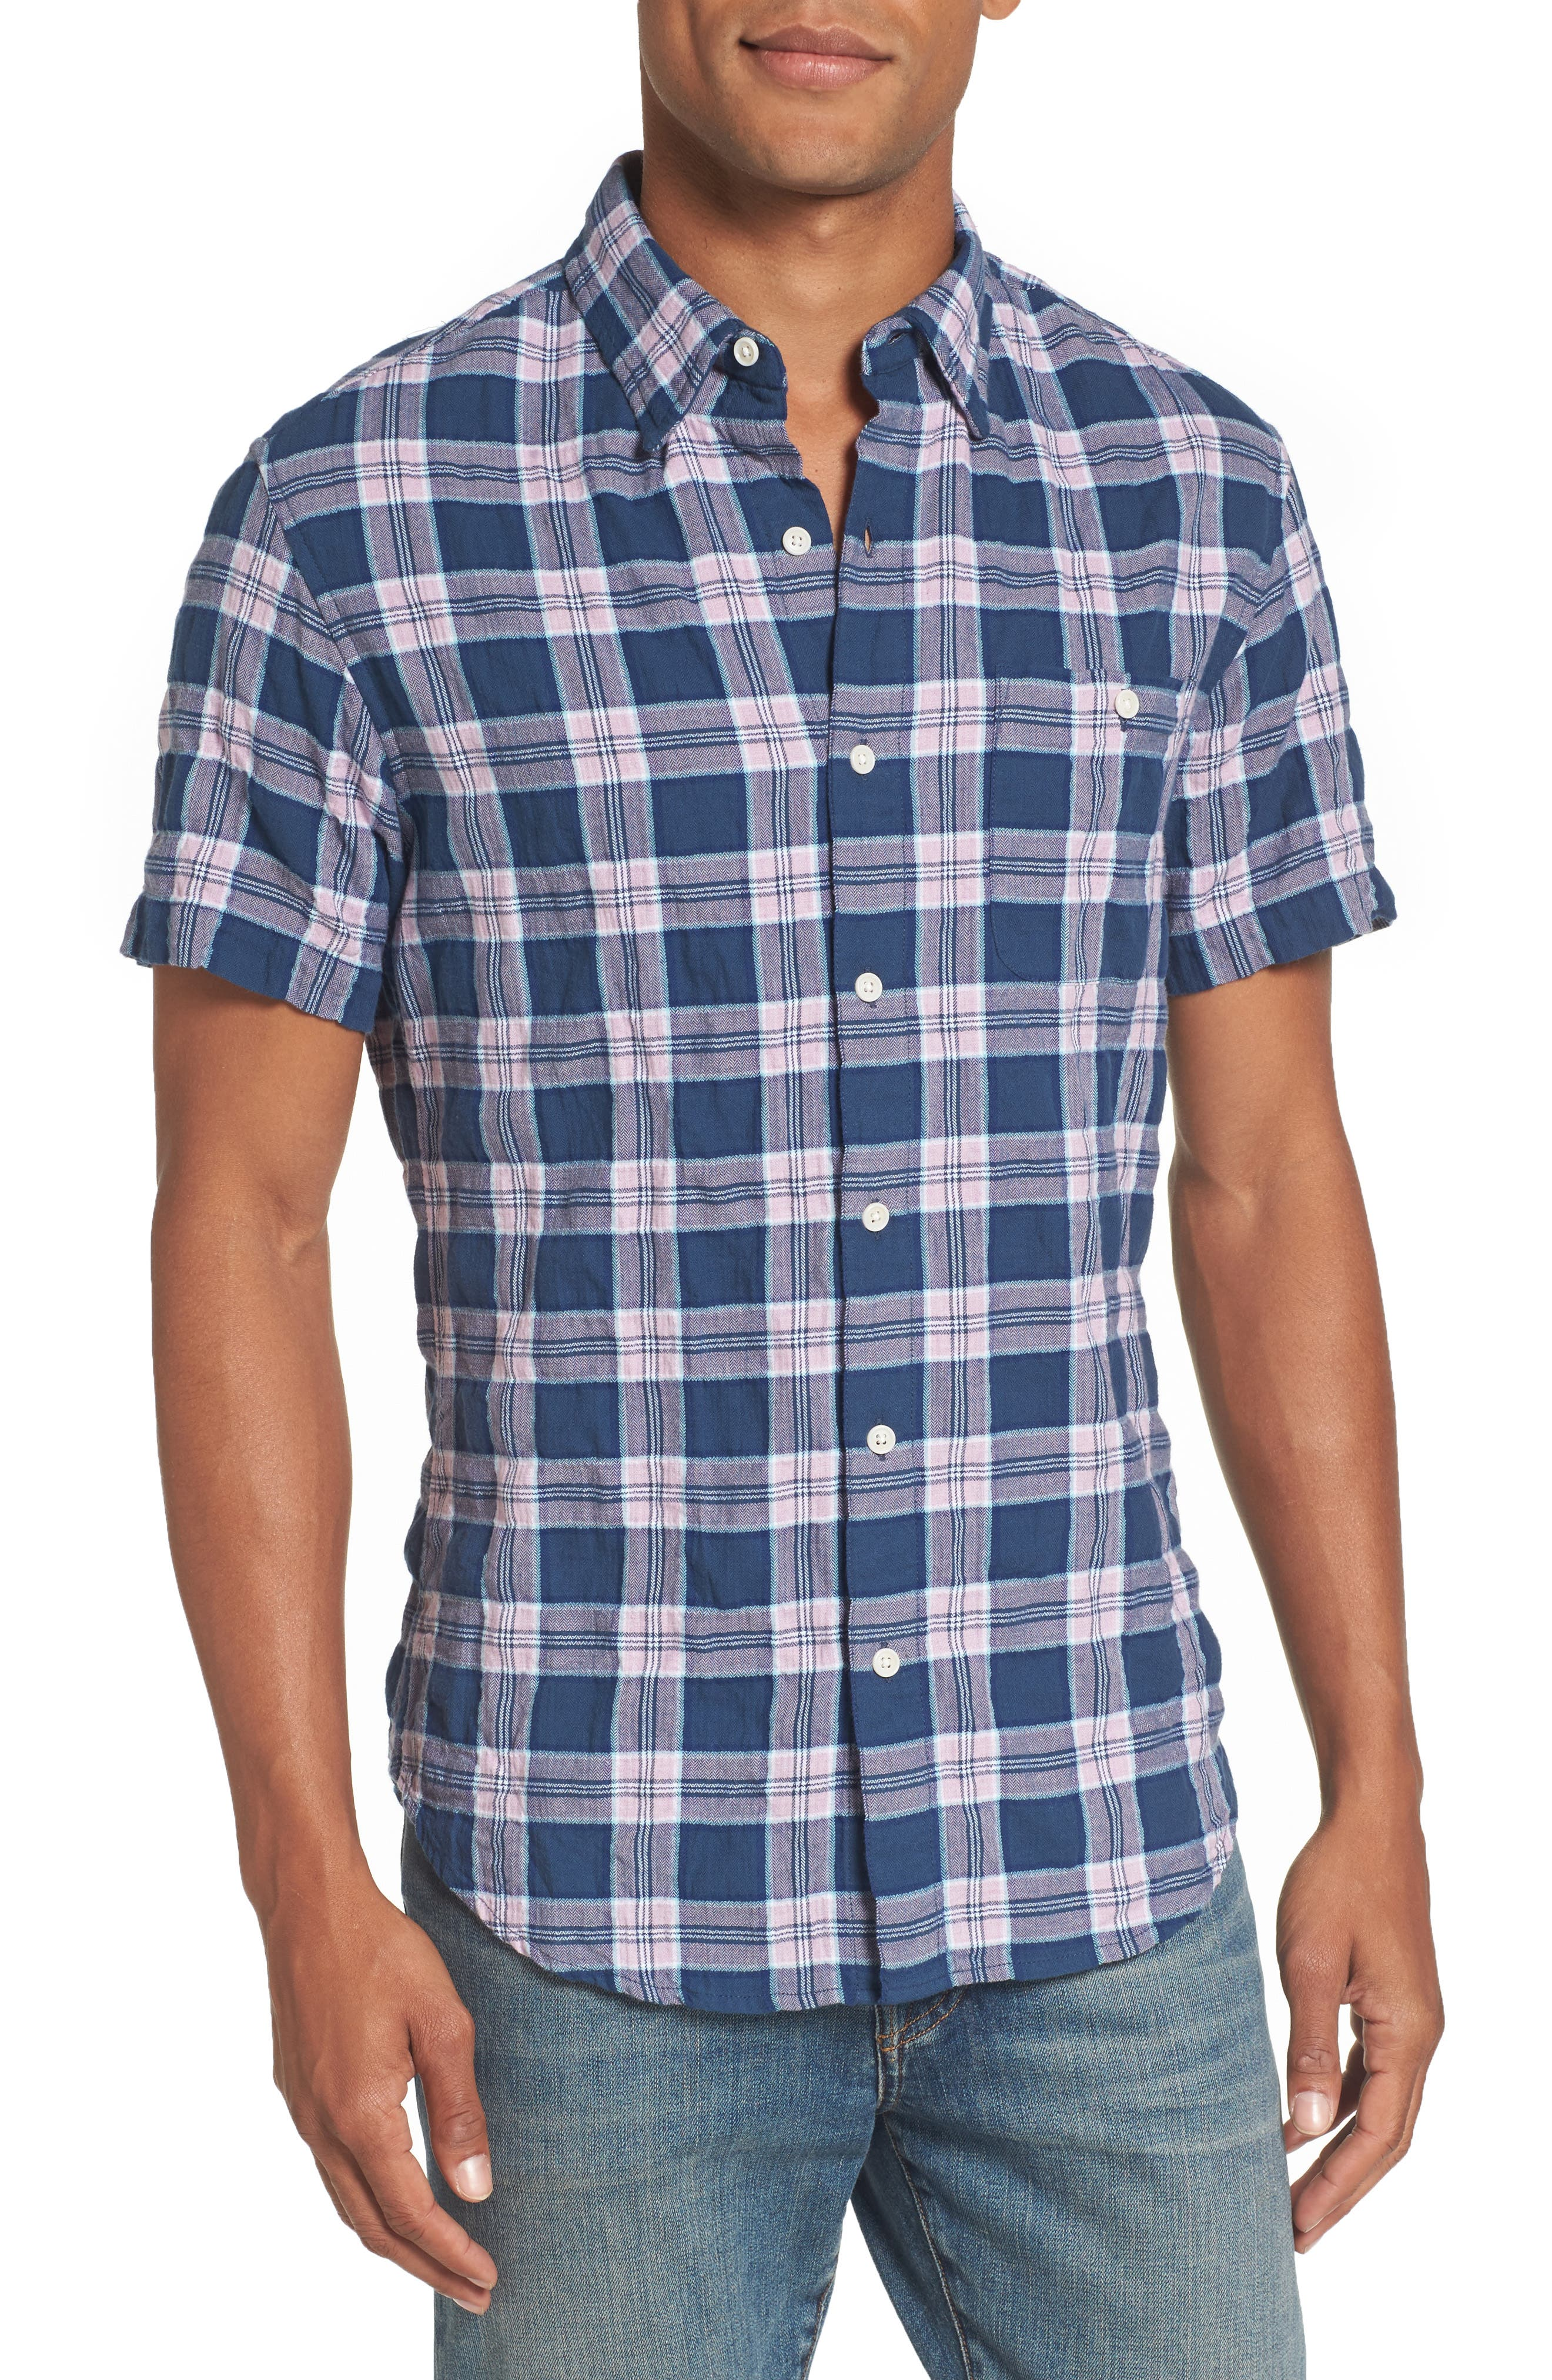 Riviera Slim Fit Plaid Woven Shirt,                             Main thumbnail 1, color,